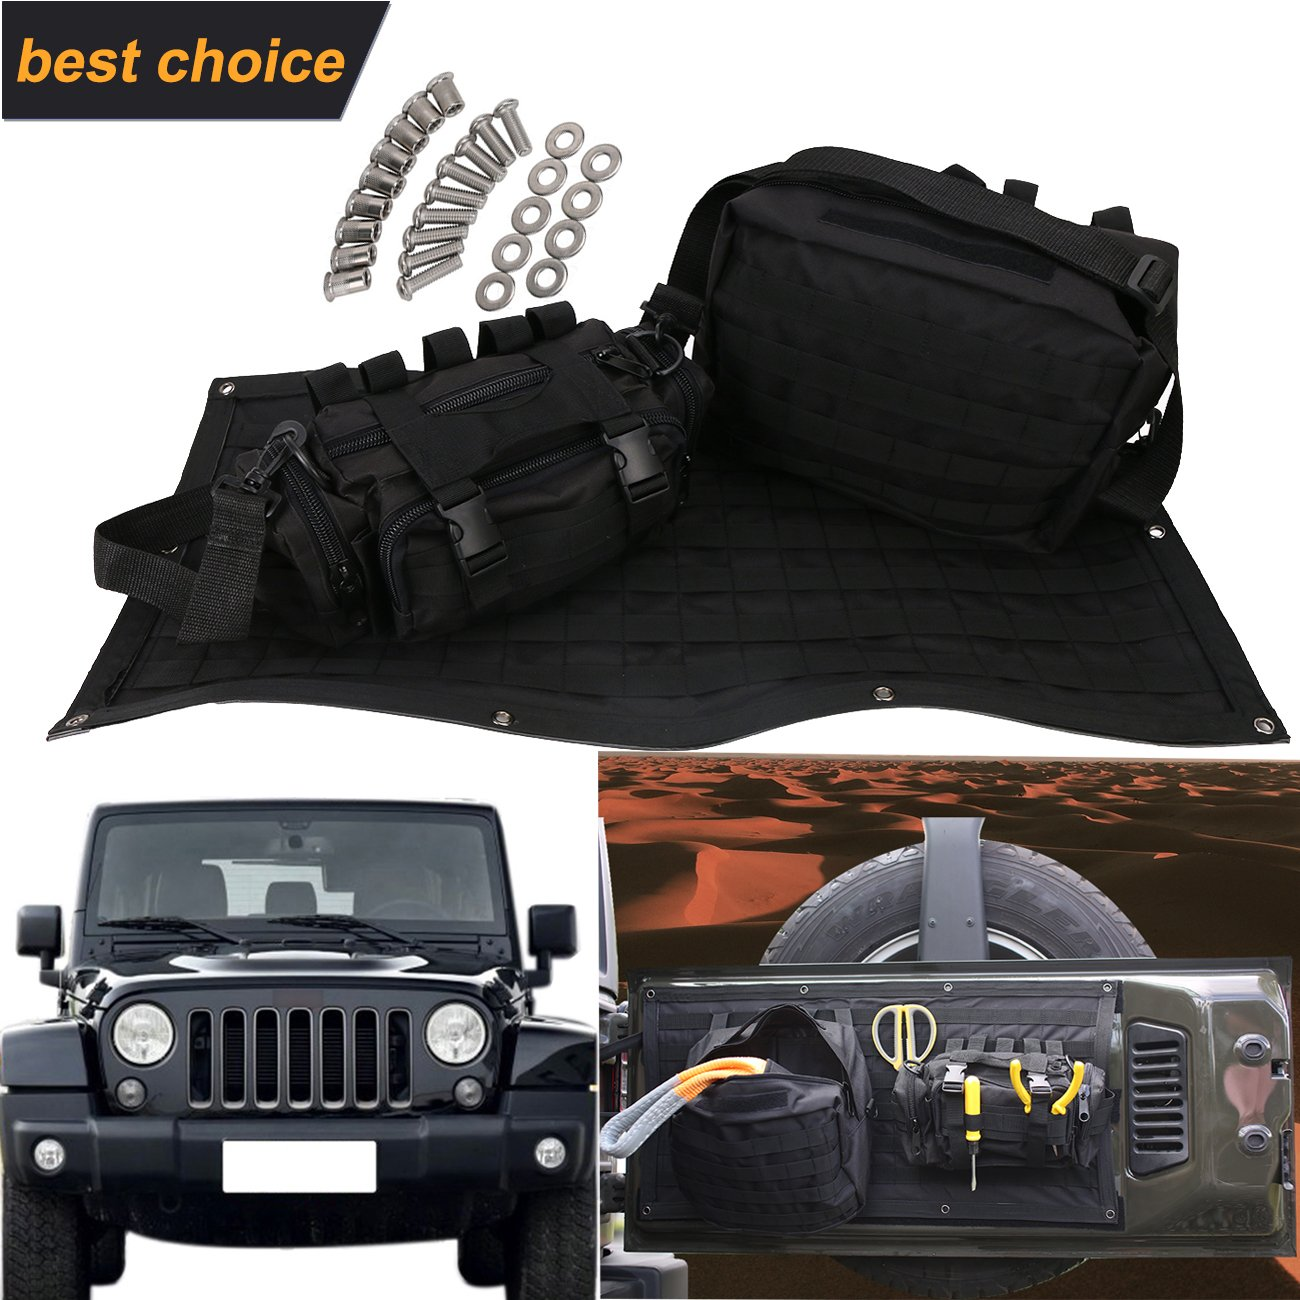 Tailgate Multi-Pockets Storage & Tool Cargo Carrier Bags for Jeep Wrangler JK 2007-2017 Waterproof by Espear